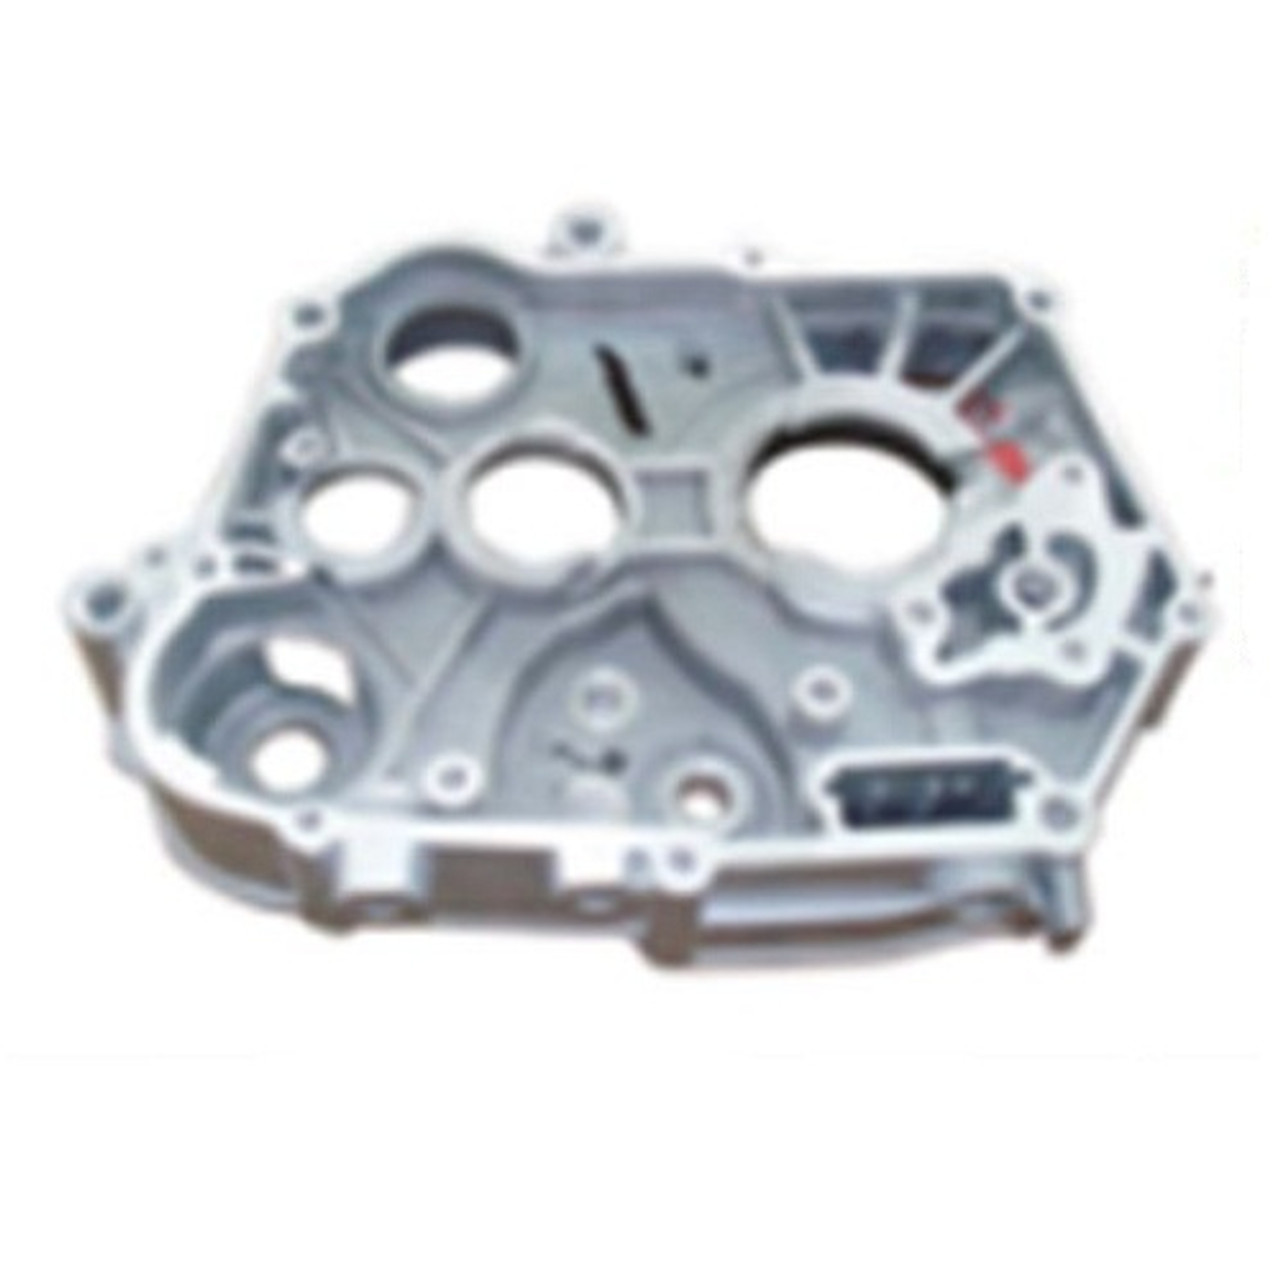 Right Engine Crankcase Comp; Metal Color for ATA 110 B/B1 104377